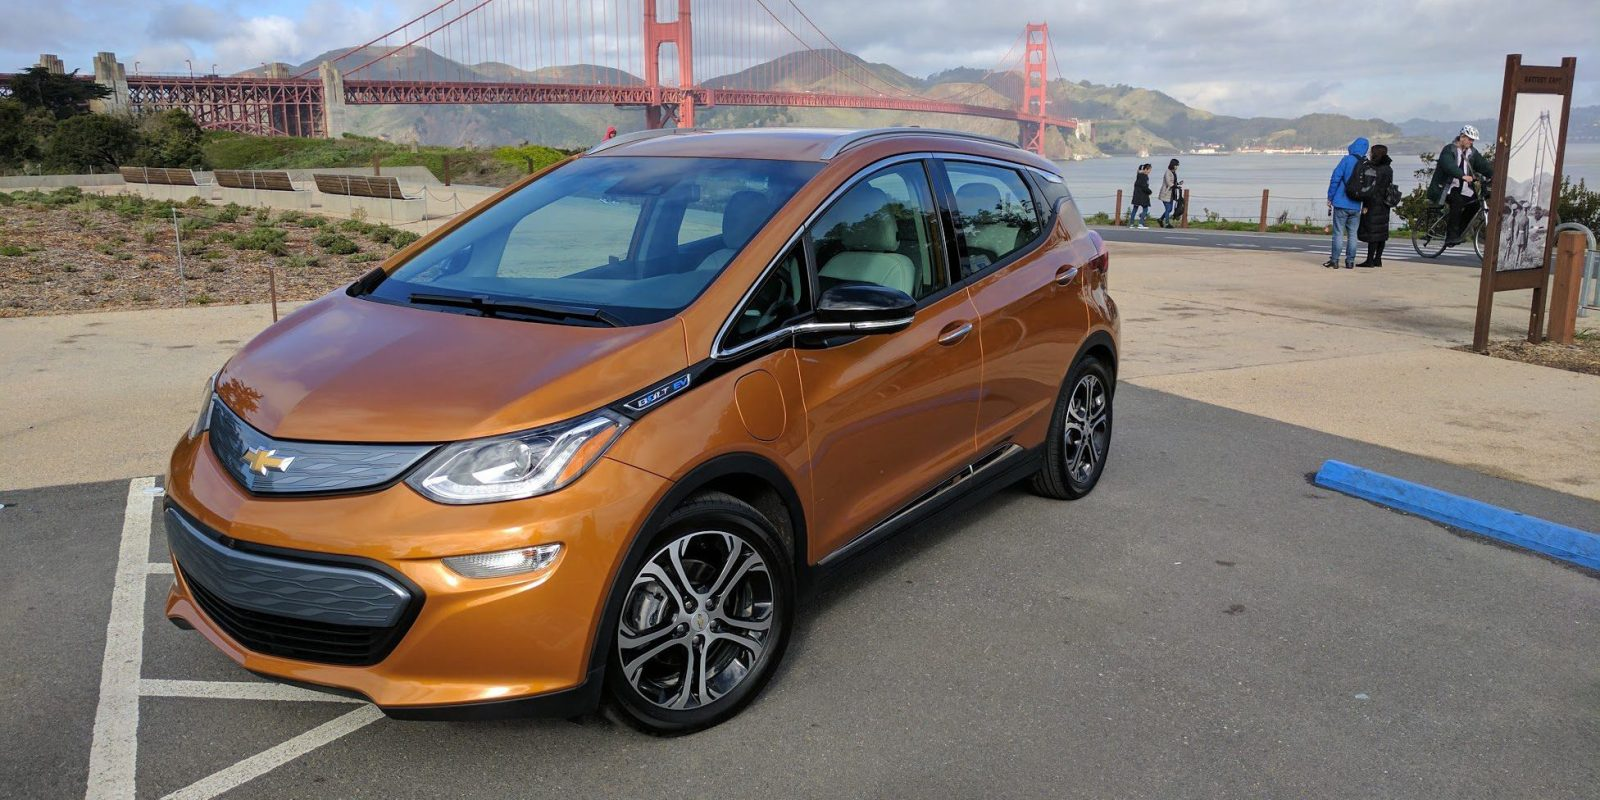 San Francisco aims for emission-free transportation by 2040, moves to increase EV charging options